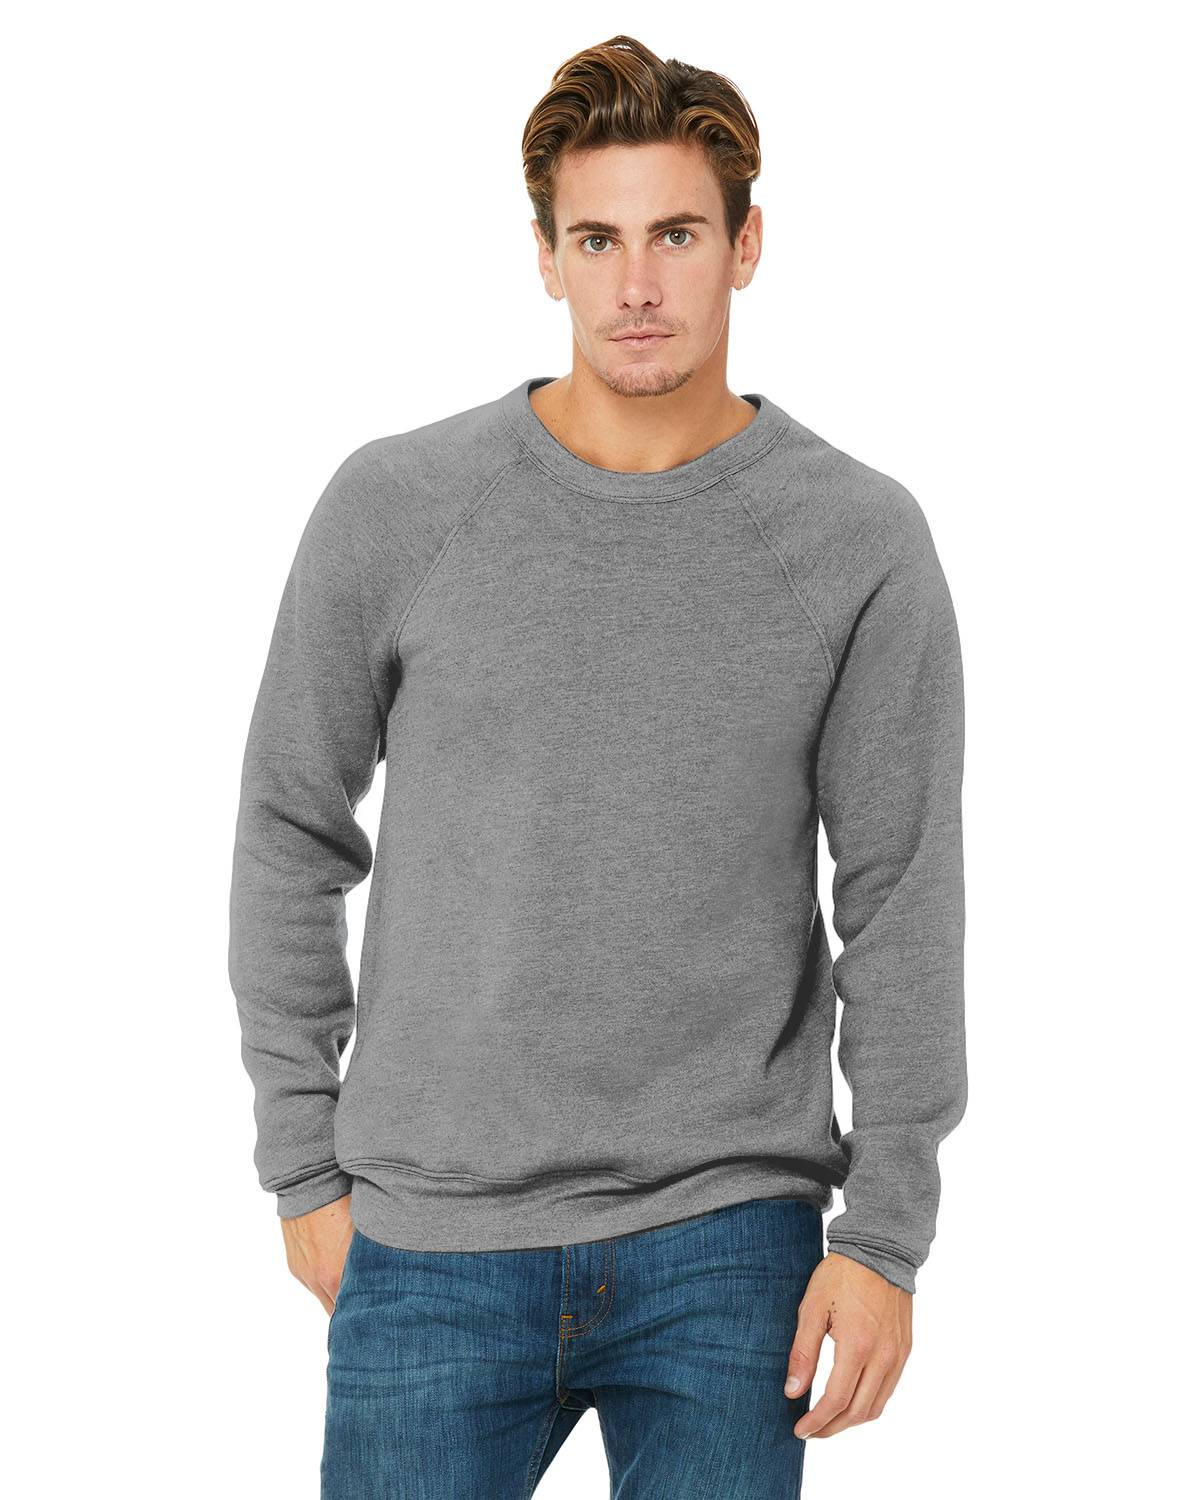 Bella + Canvas Unisex Sponge Fleece Crewneck Sweatshirt | 3901